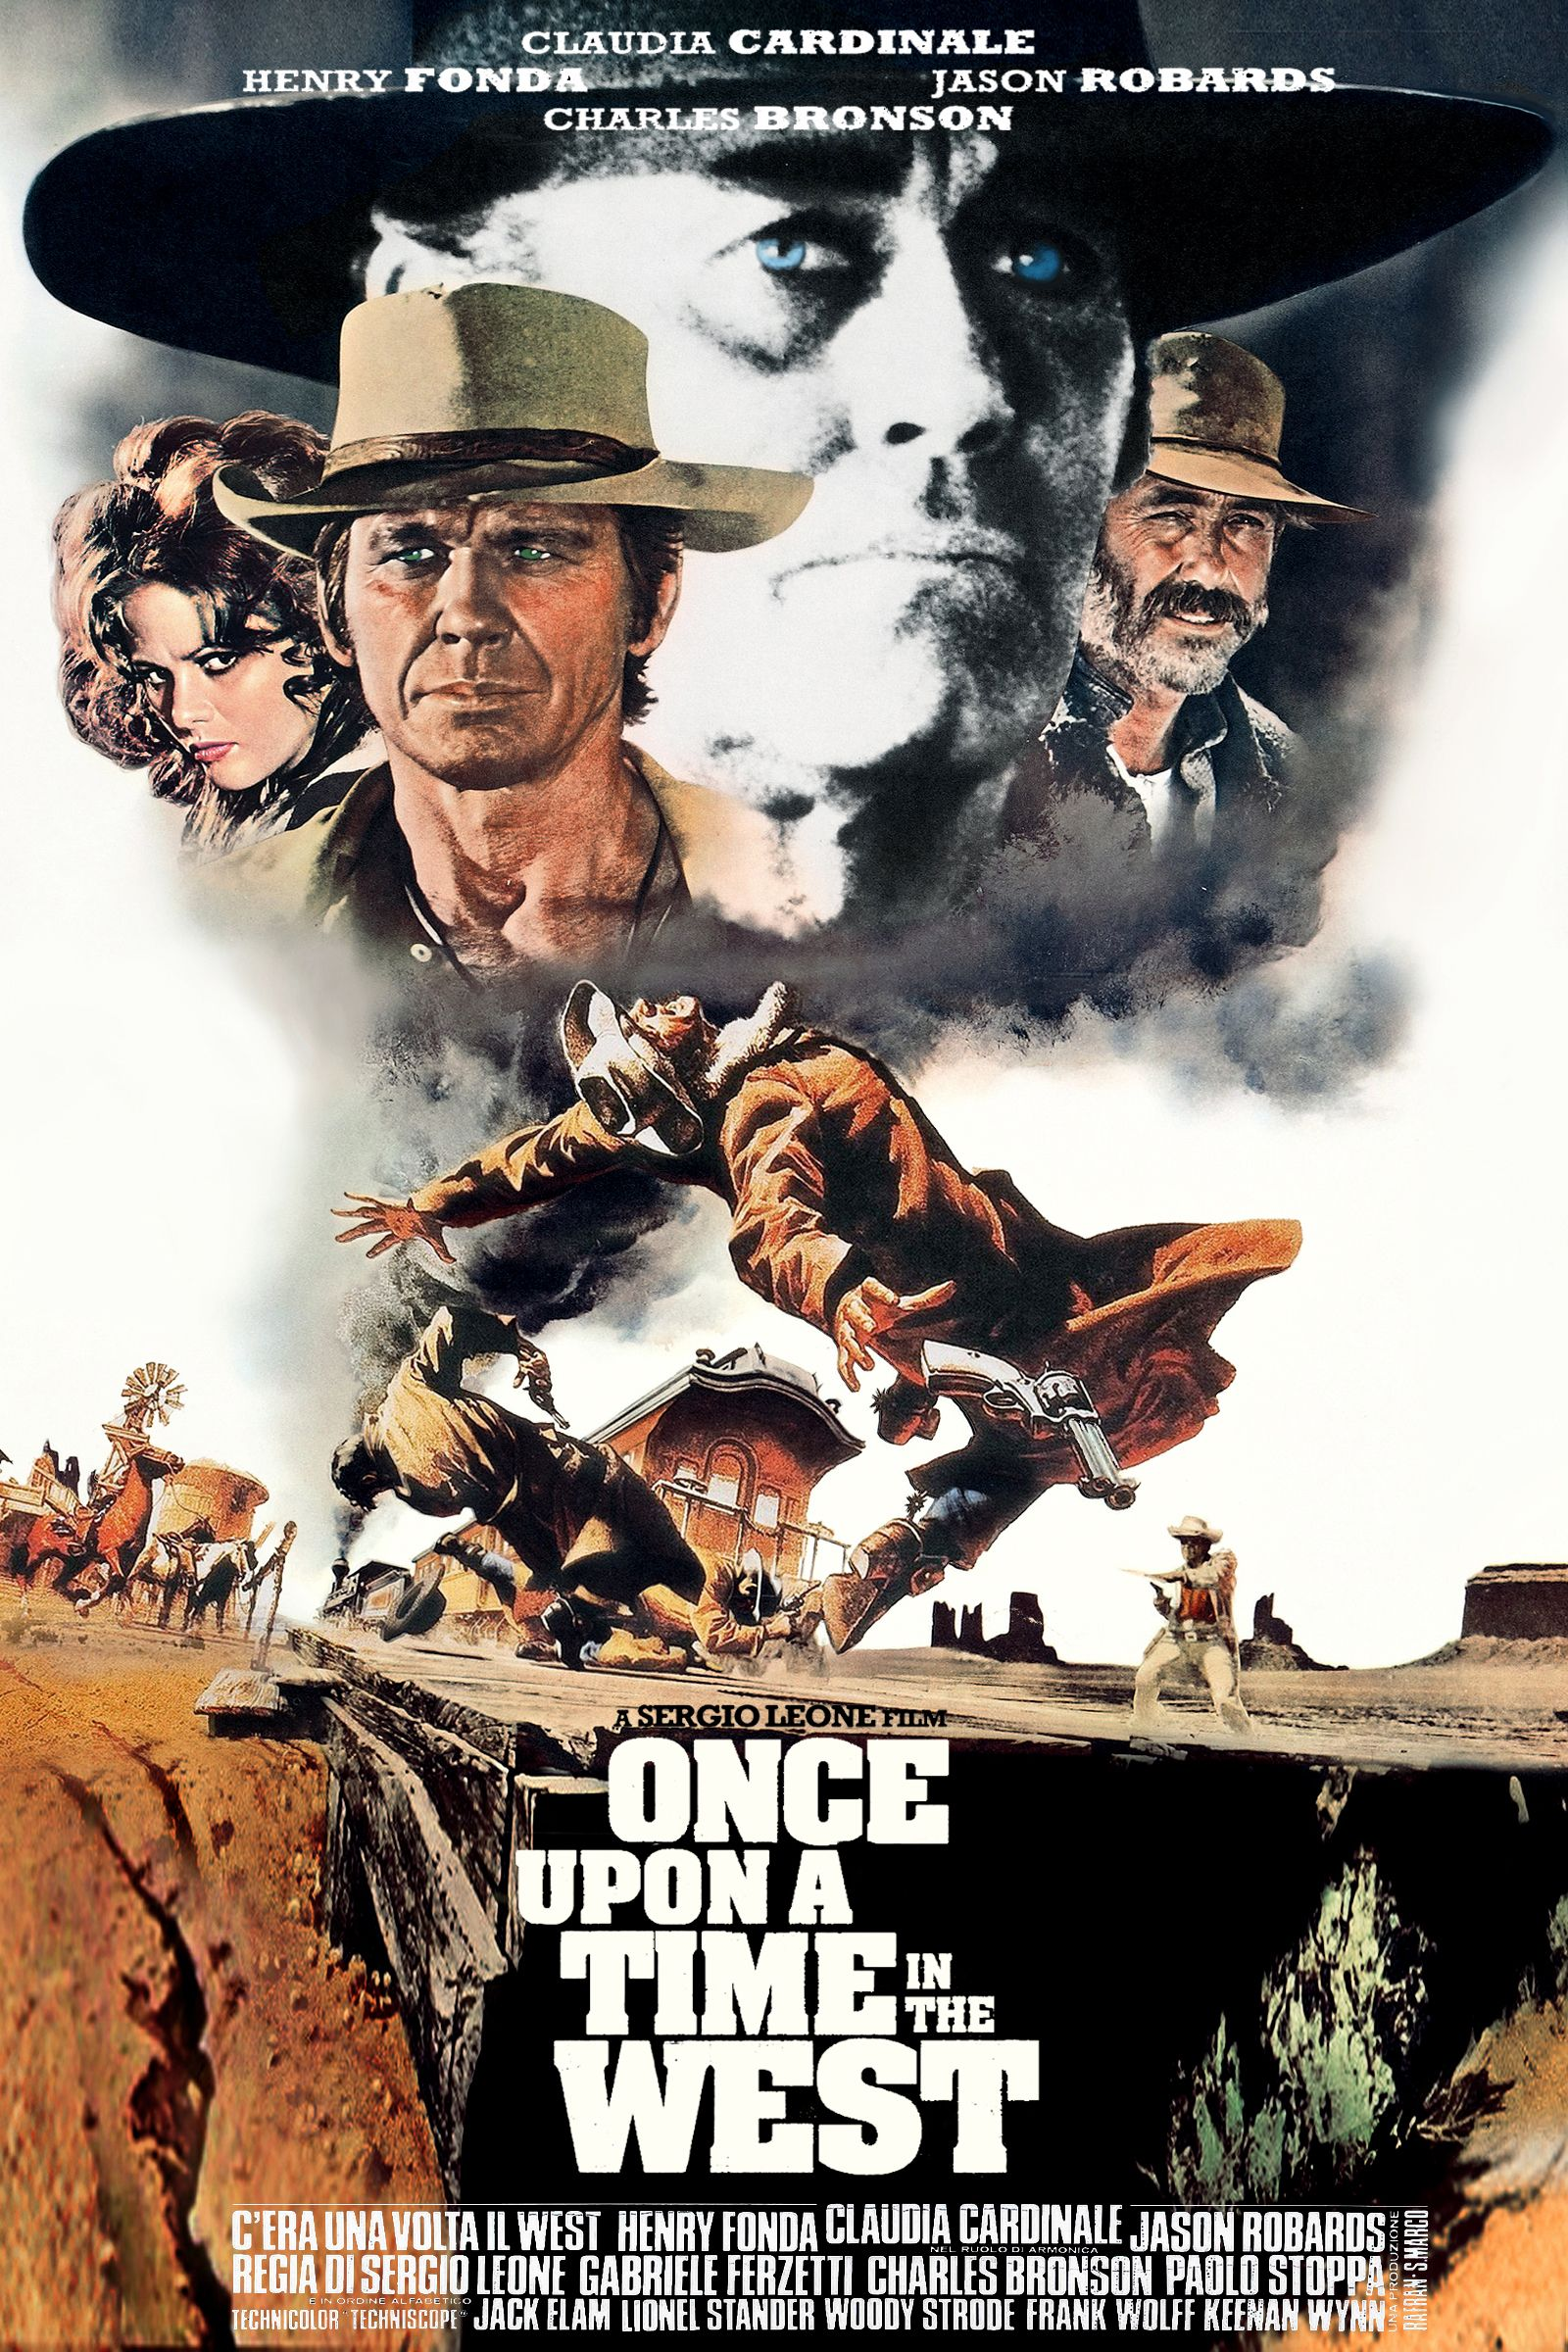 Risultati immagini per ONCE UPON A TIME IN THE WEST ( 1968 ) POSTER